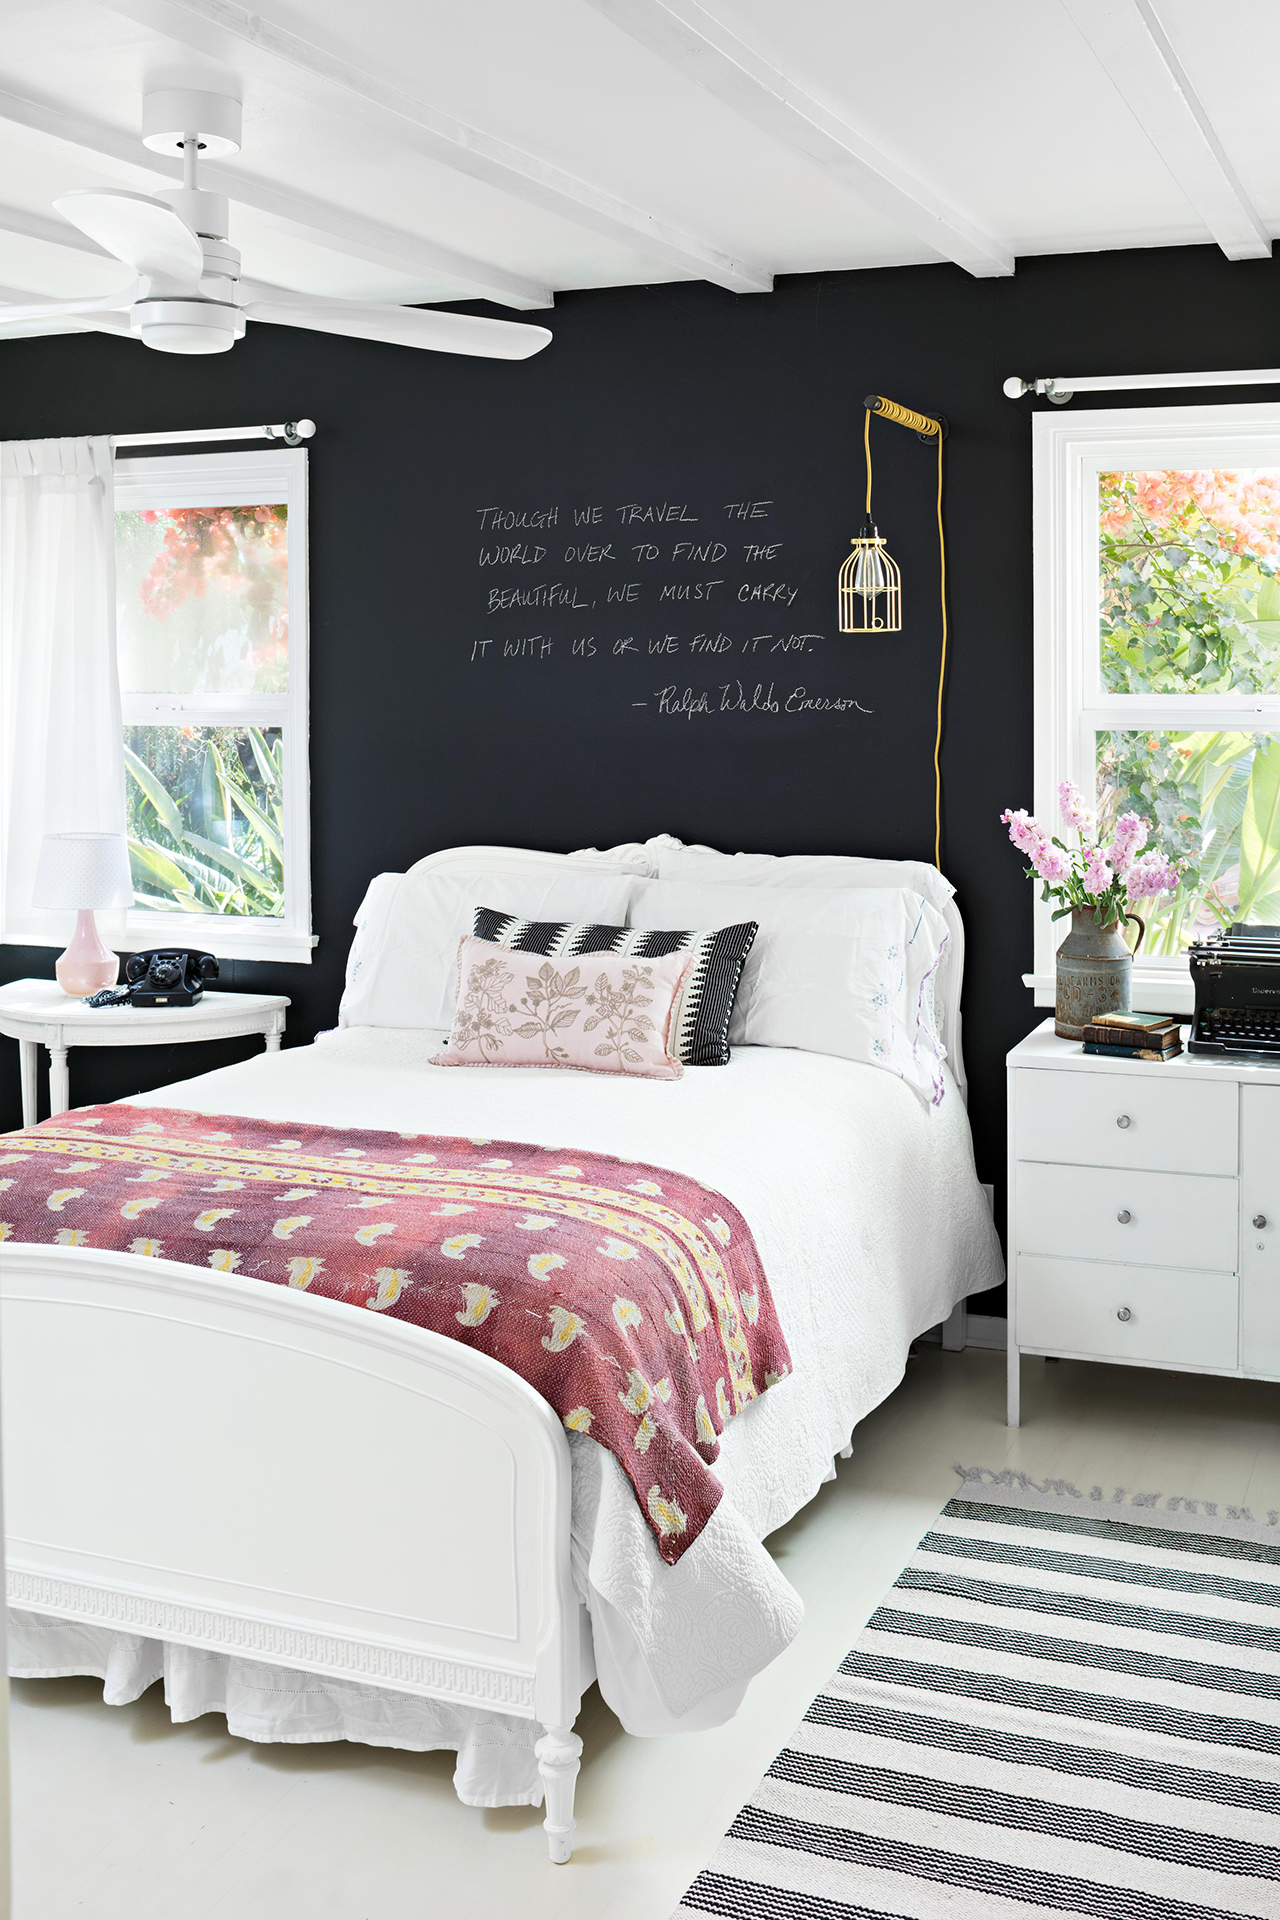 14 Small Bedroom Ideas To Make Your Space Feel Bigger Than It Really Is Better Homes Gardens